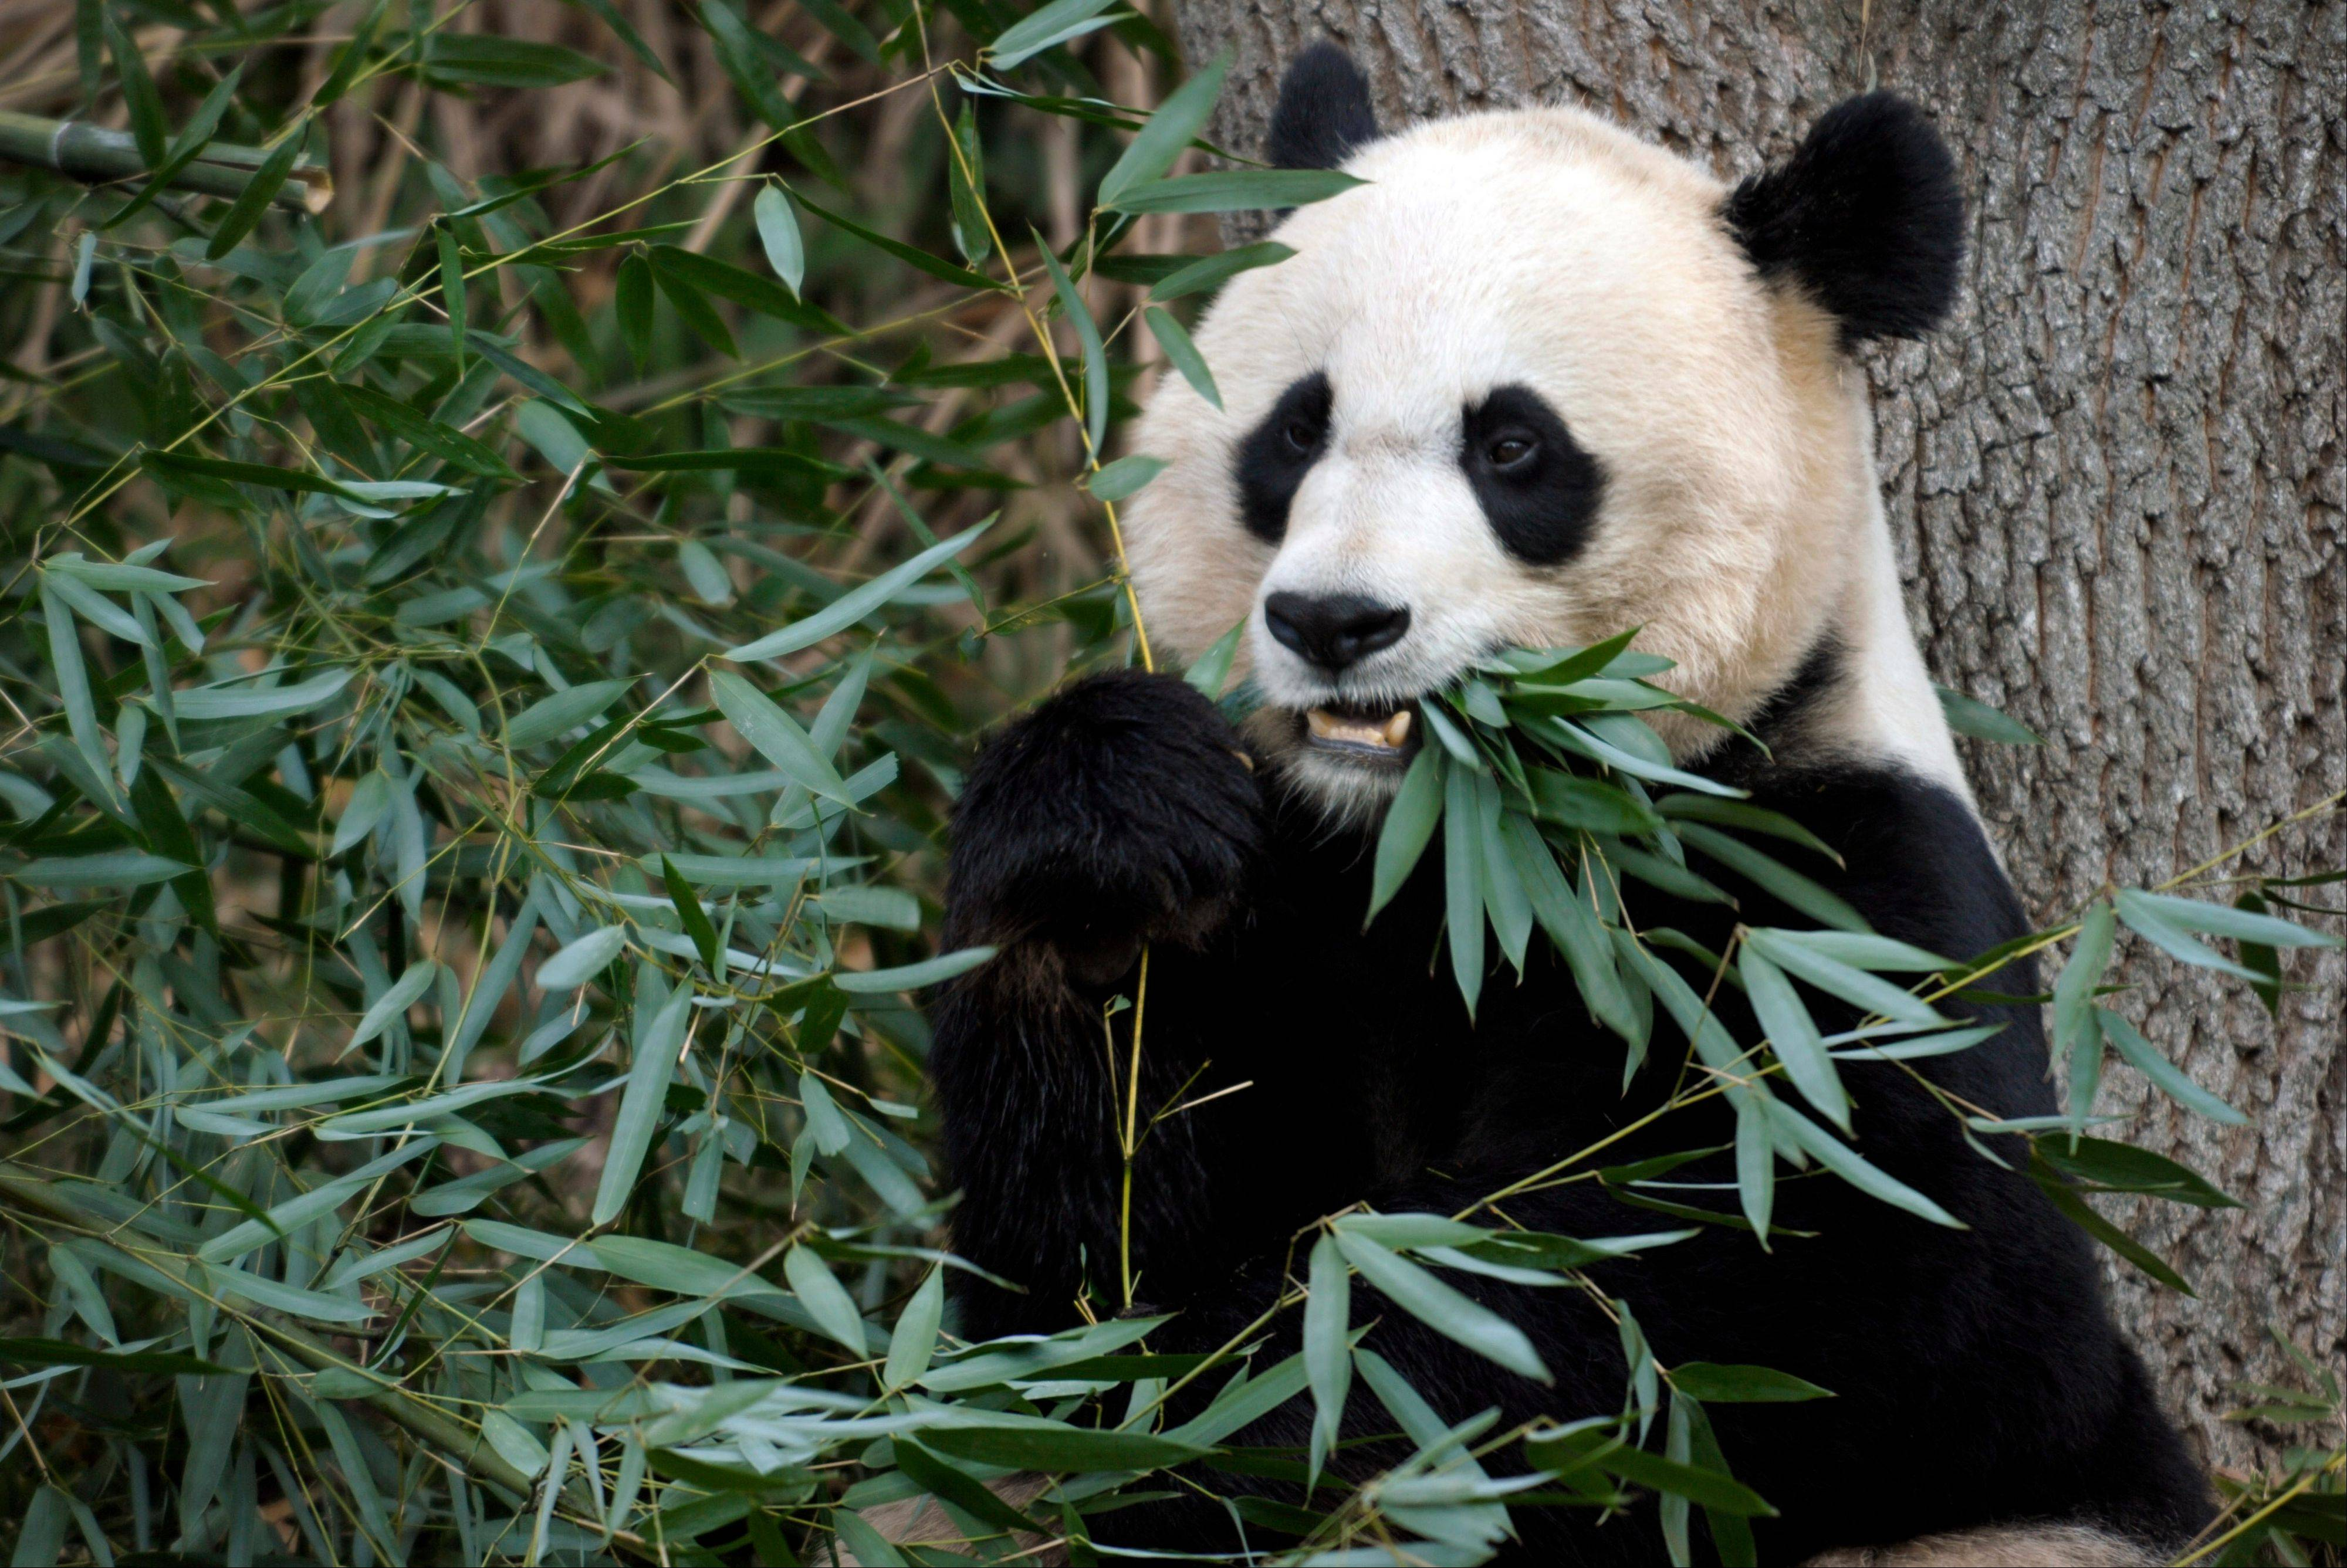 Mei Xiang, the female giant panda at the Smithsonian�s National Zoo in Washington, gave birth to a cub Sept. 16, but the cub died Sunday.